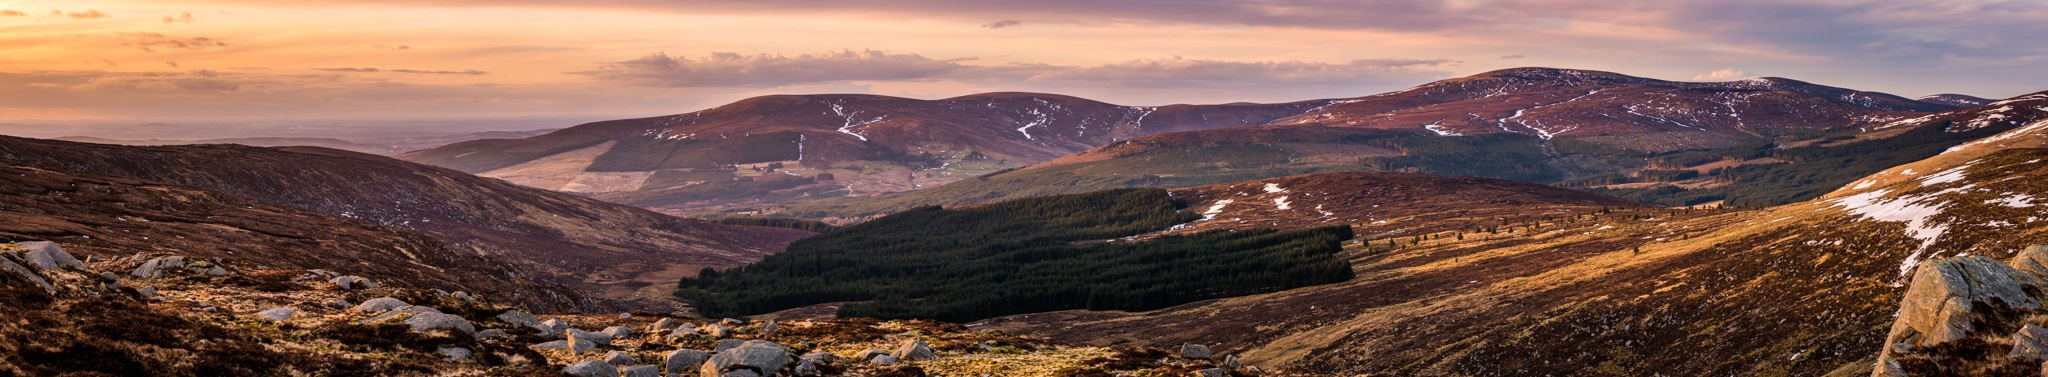 Wicklow Mountains Sunset by Florian Christoph